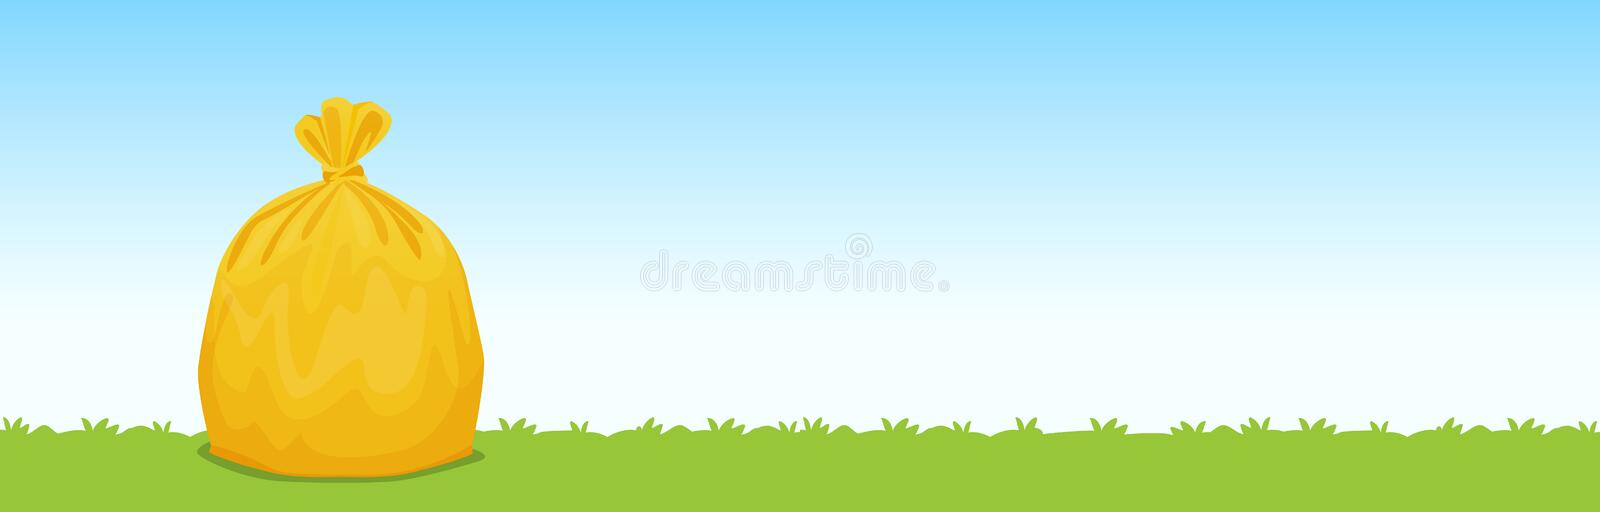 Bag yellow plastic garbage on the grass blue sky background, garbage bags for waste, pollution plastic bag waste, 3r ad, waste stock illustration